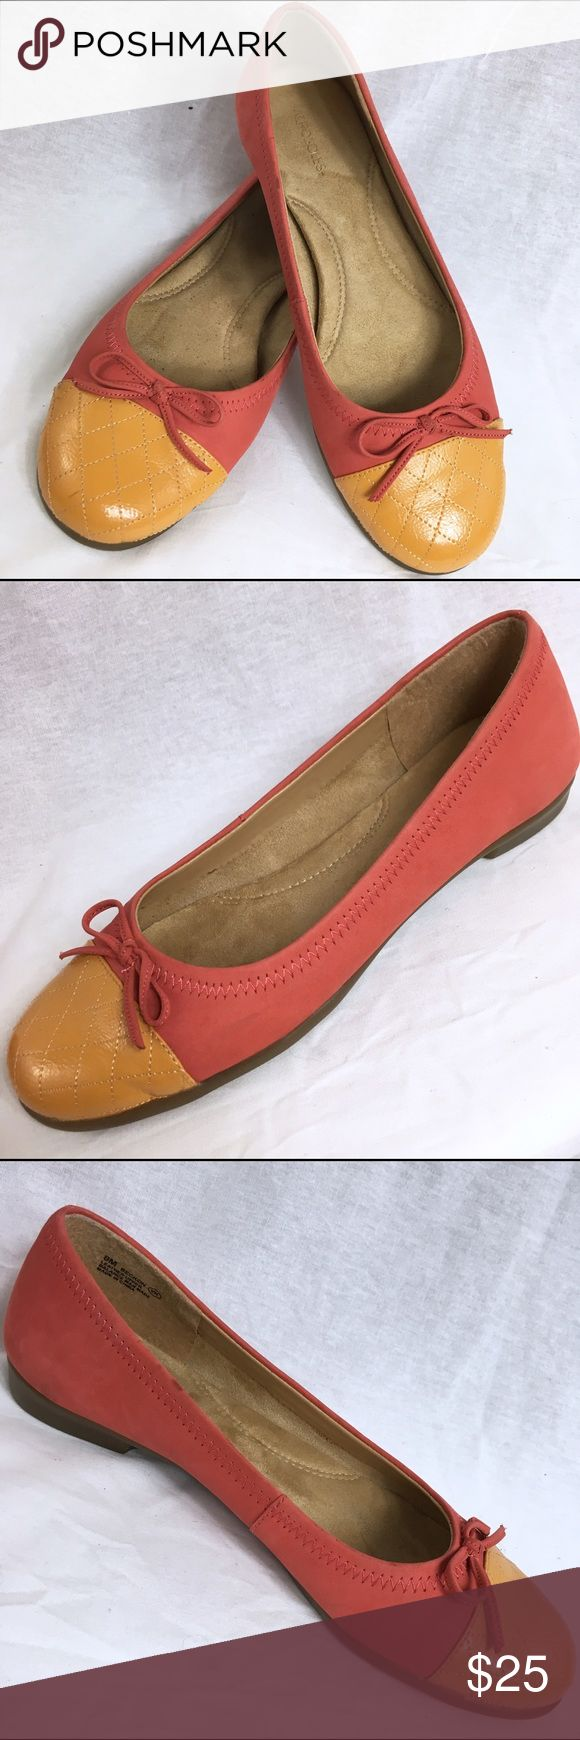 AEROSOLES BECKON Leather Ballet Flats - Size 8M These leather ballet flats are in very good condition! They have been gently worn. They are a salmon color with an orange toe. AEROSOLES Shoes Flats & Loafers